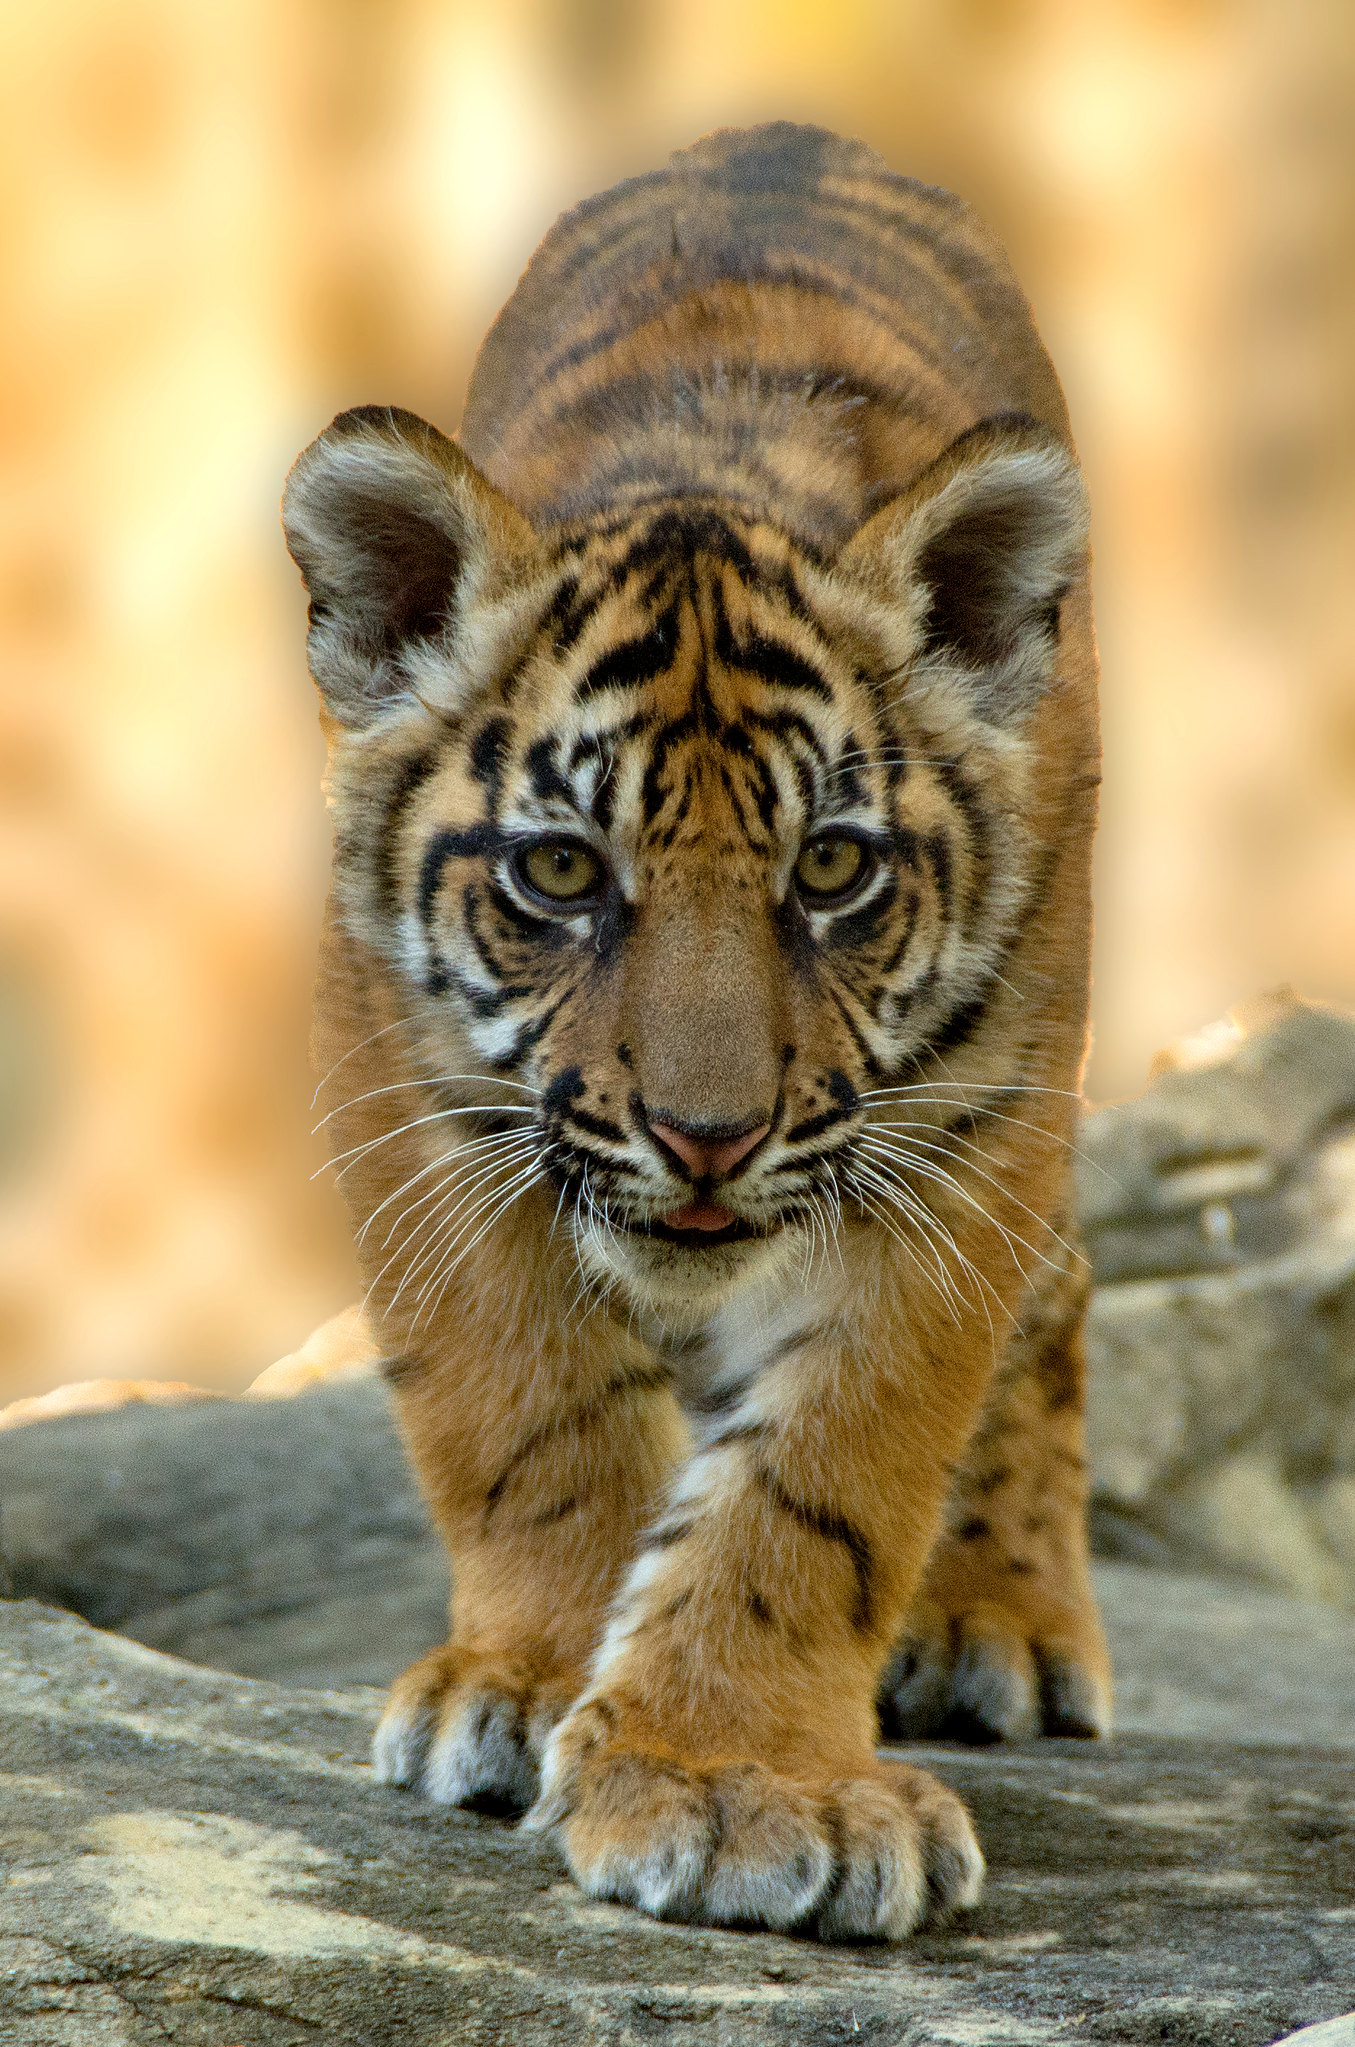 The Bali Tiger Hunted To Extinction 12 Images